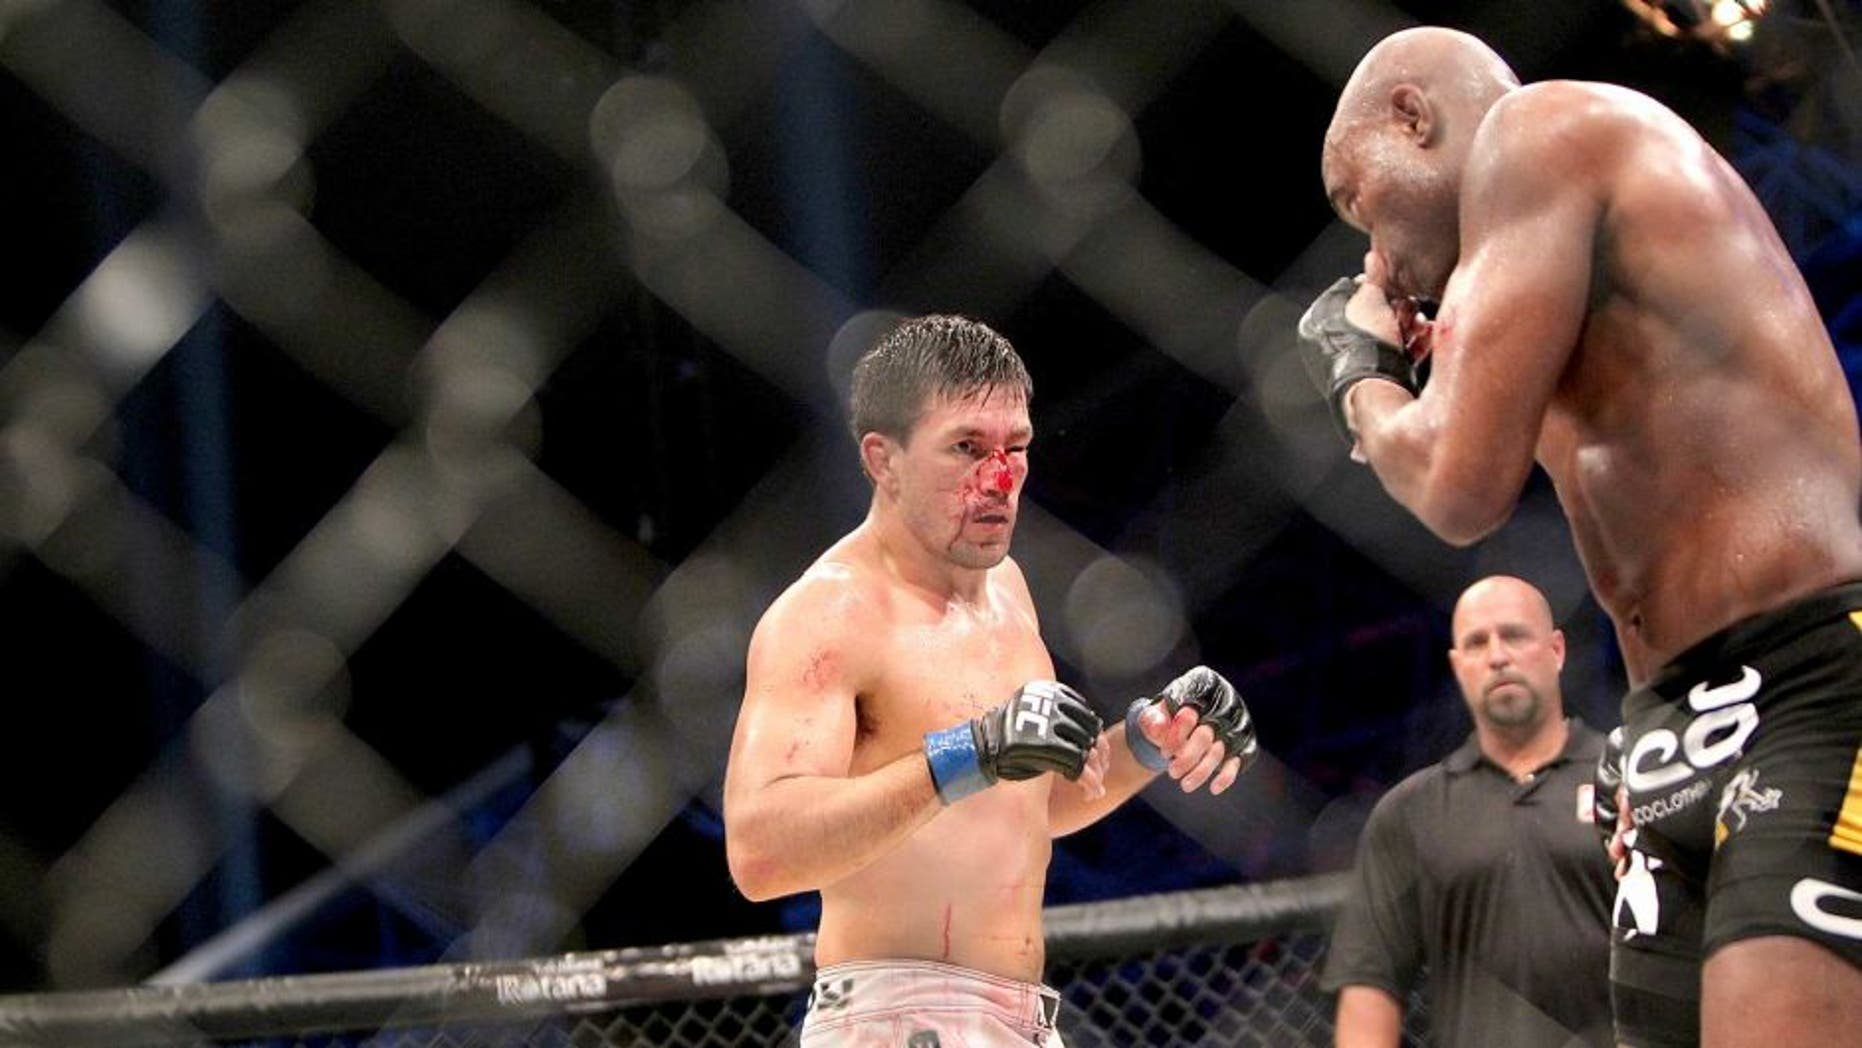 Brazil's Demian Maia (L) bleeds as his compatriot Anderson Silva prepares for an attack during their Ultimate Fighting Championship (UFC) 112 middleweight bout in Abu Dhabi on April 10, 2010. Silva won the fight. AFP PHOTO/KARIM SAHIB (Photo credit should read KARIM SAHIB/AFP/Getty Images)